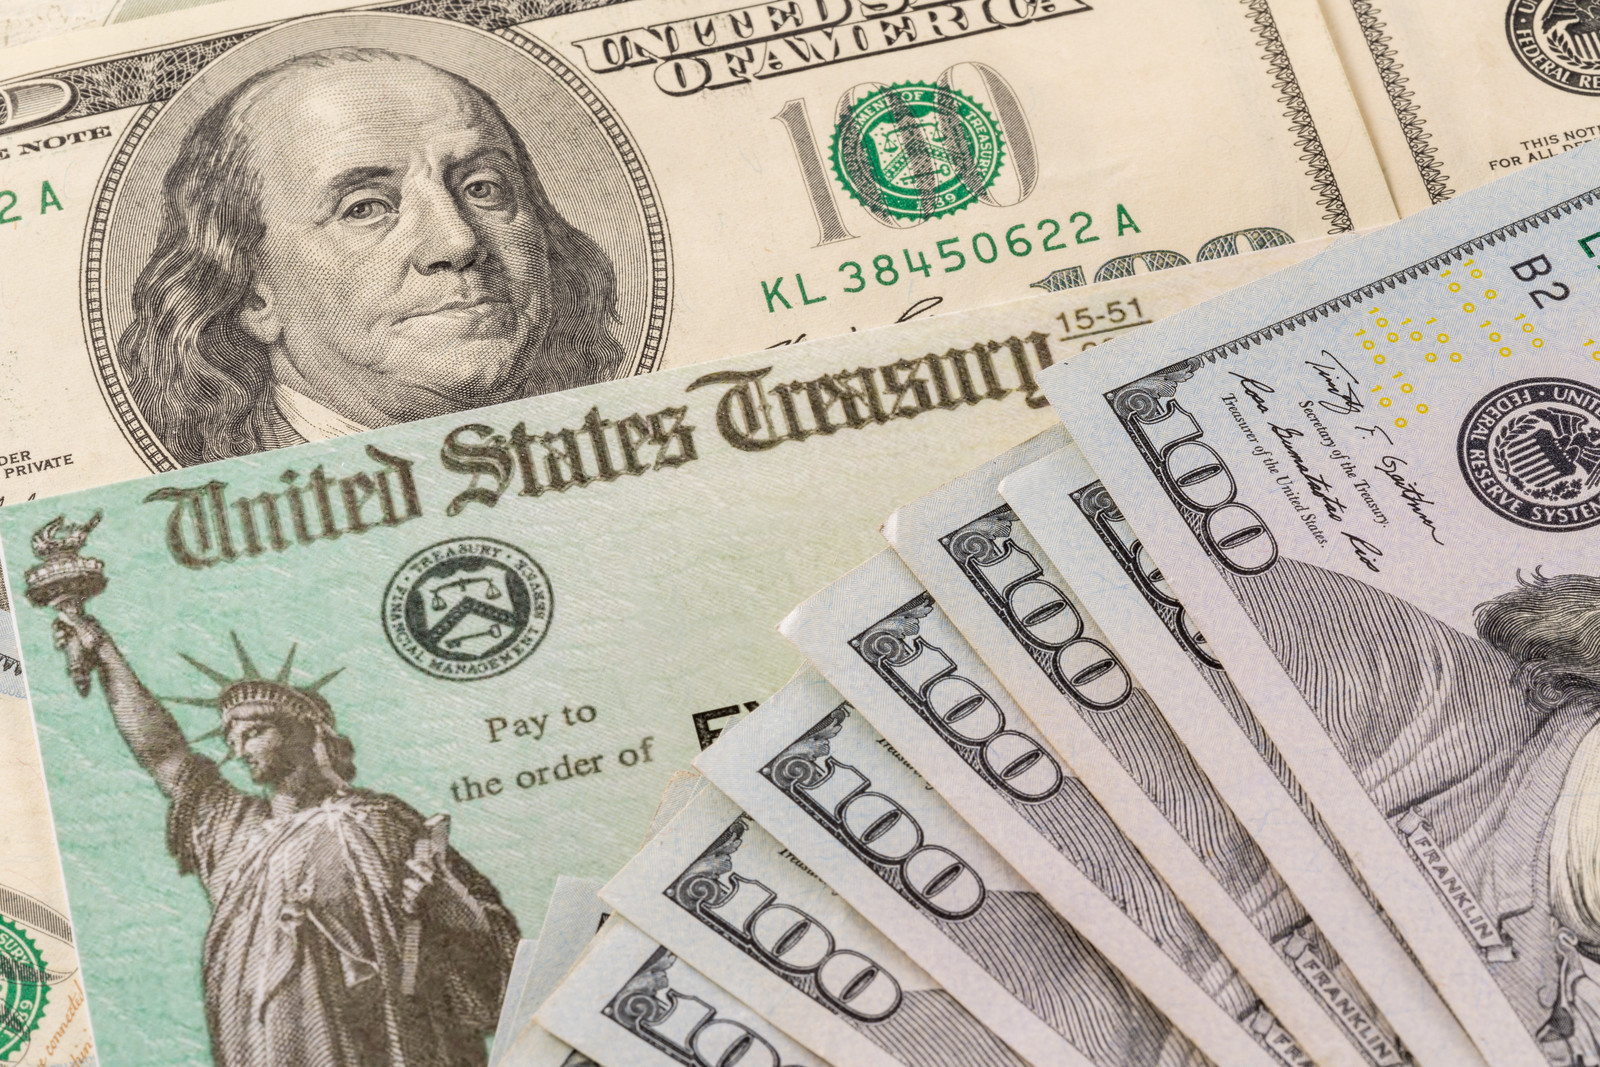 US Stimulus check with hundred dollar bills fanned out